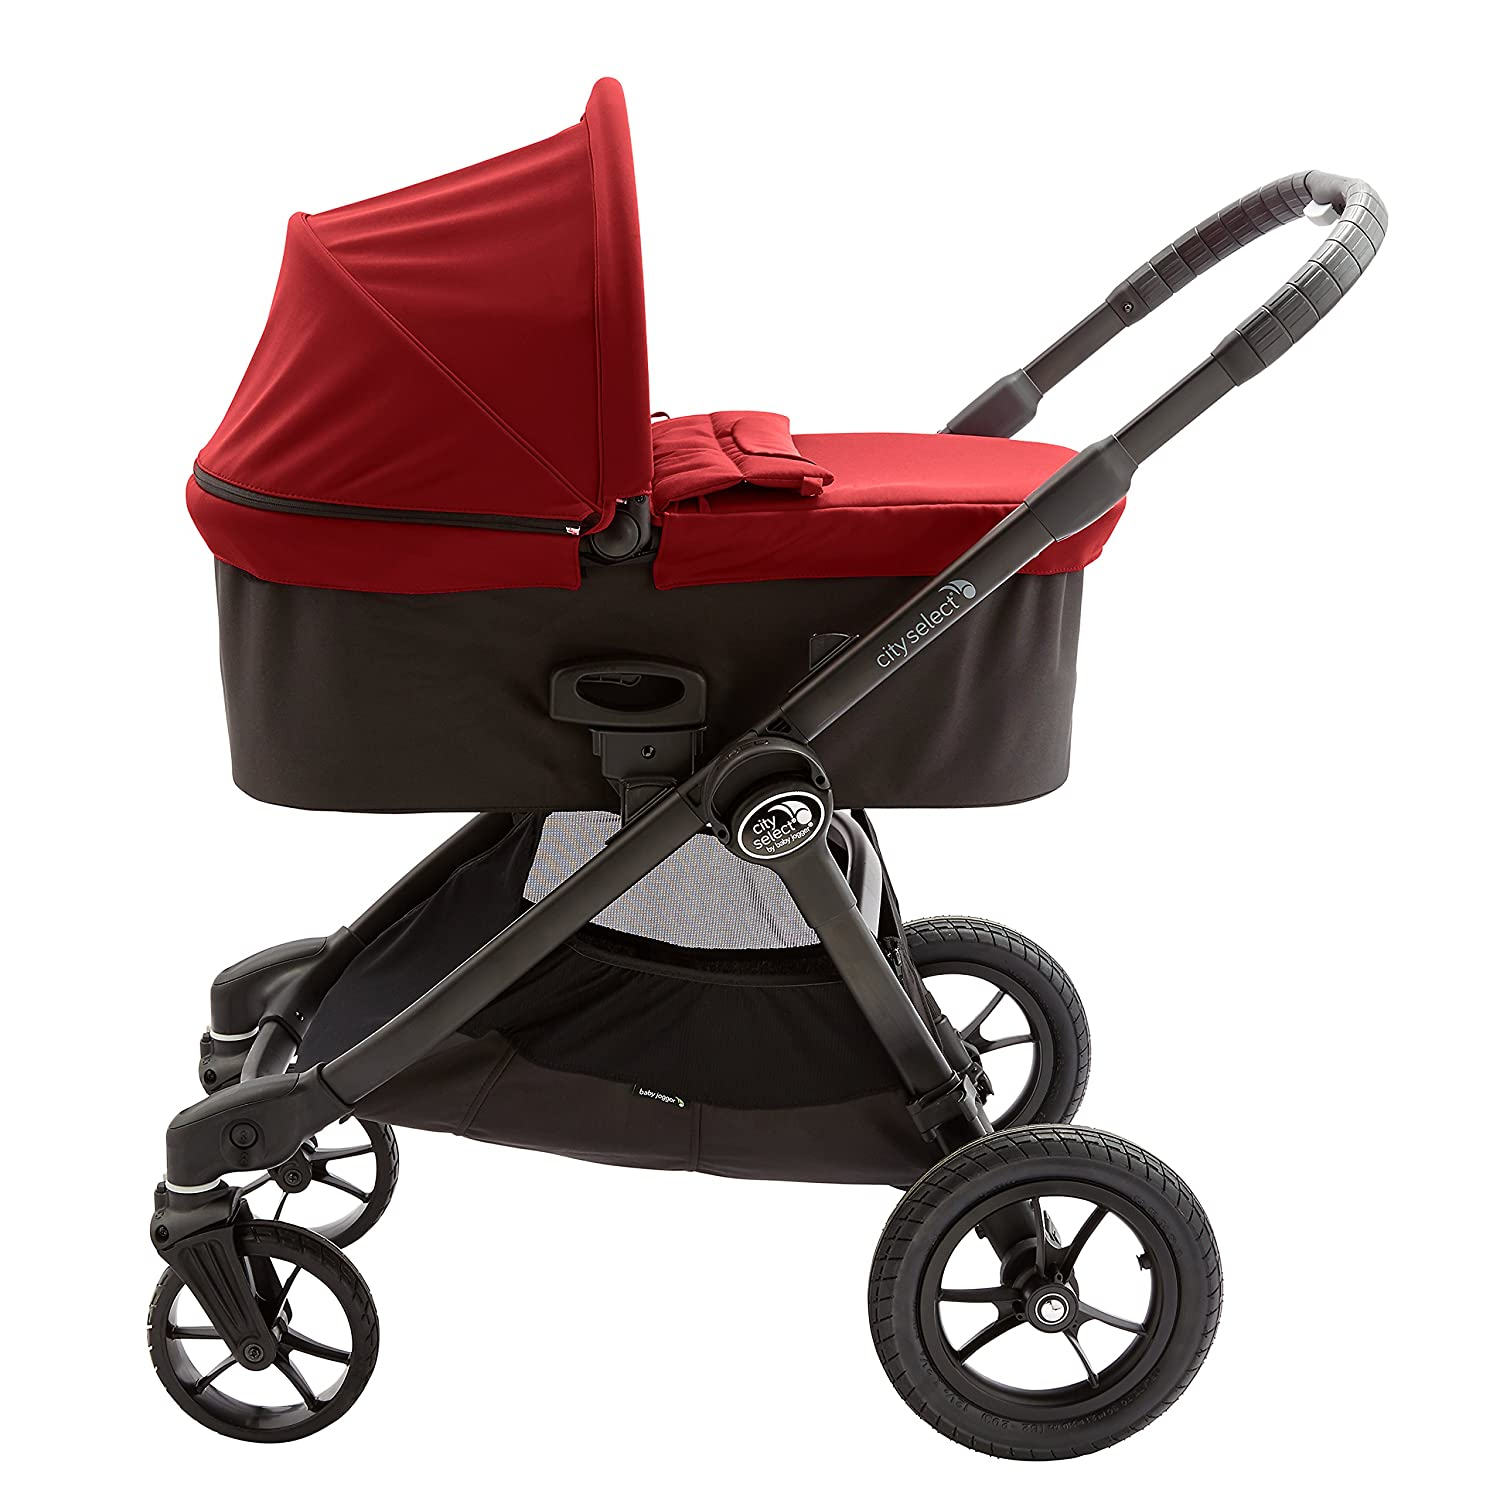 Red Free Shipping! Baby Jogger Deluxe Pram Bassinet New